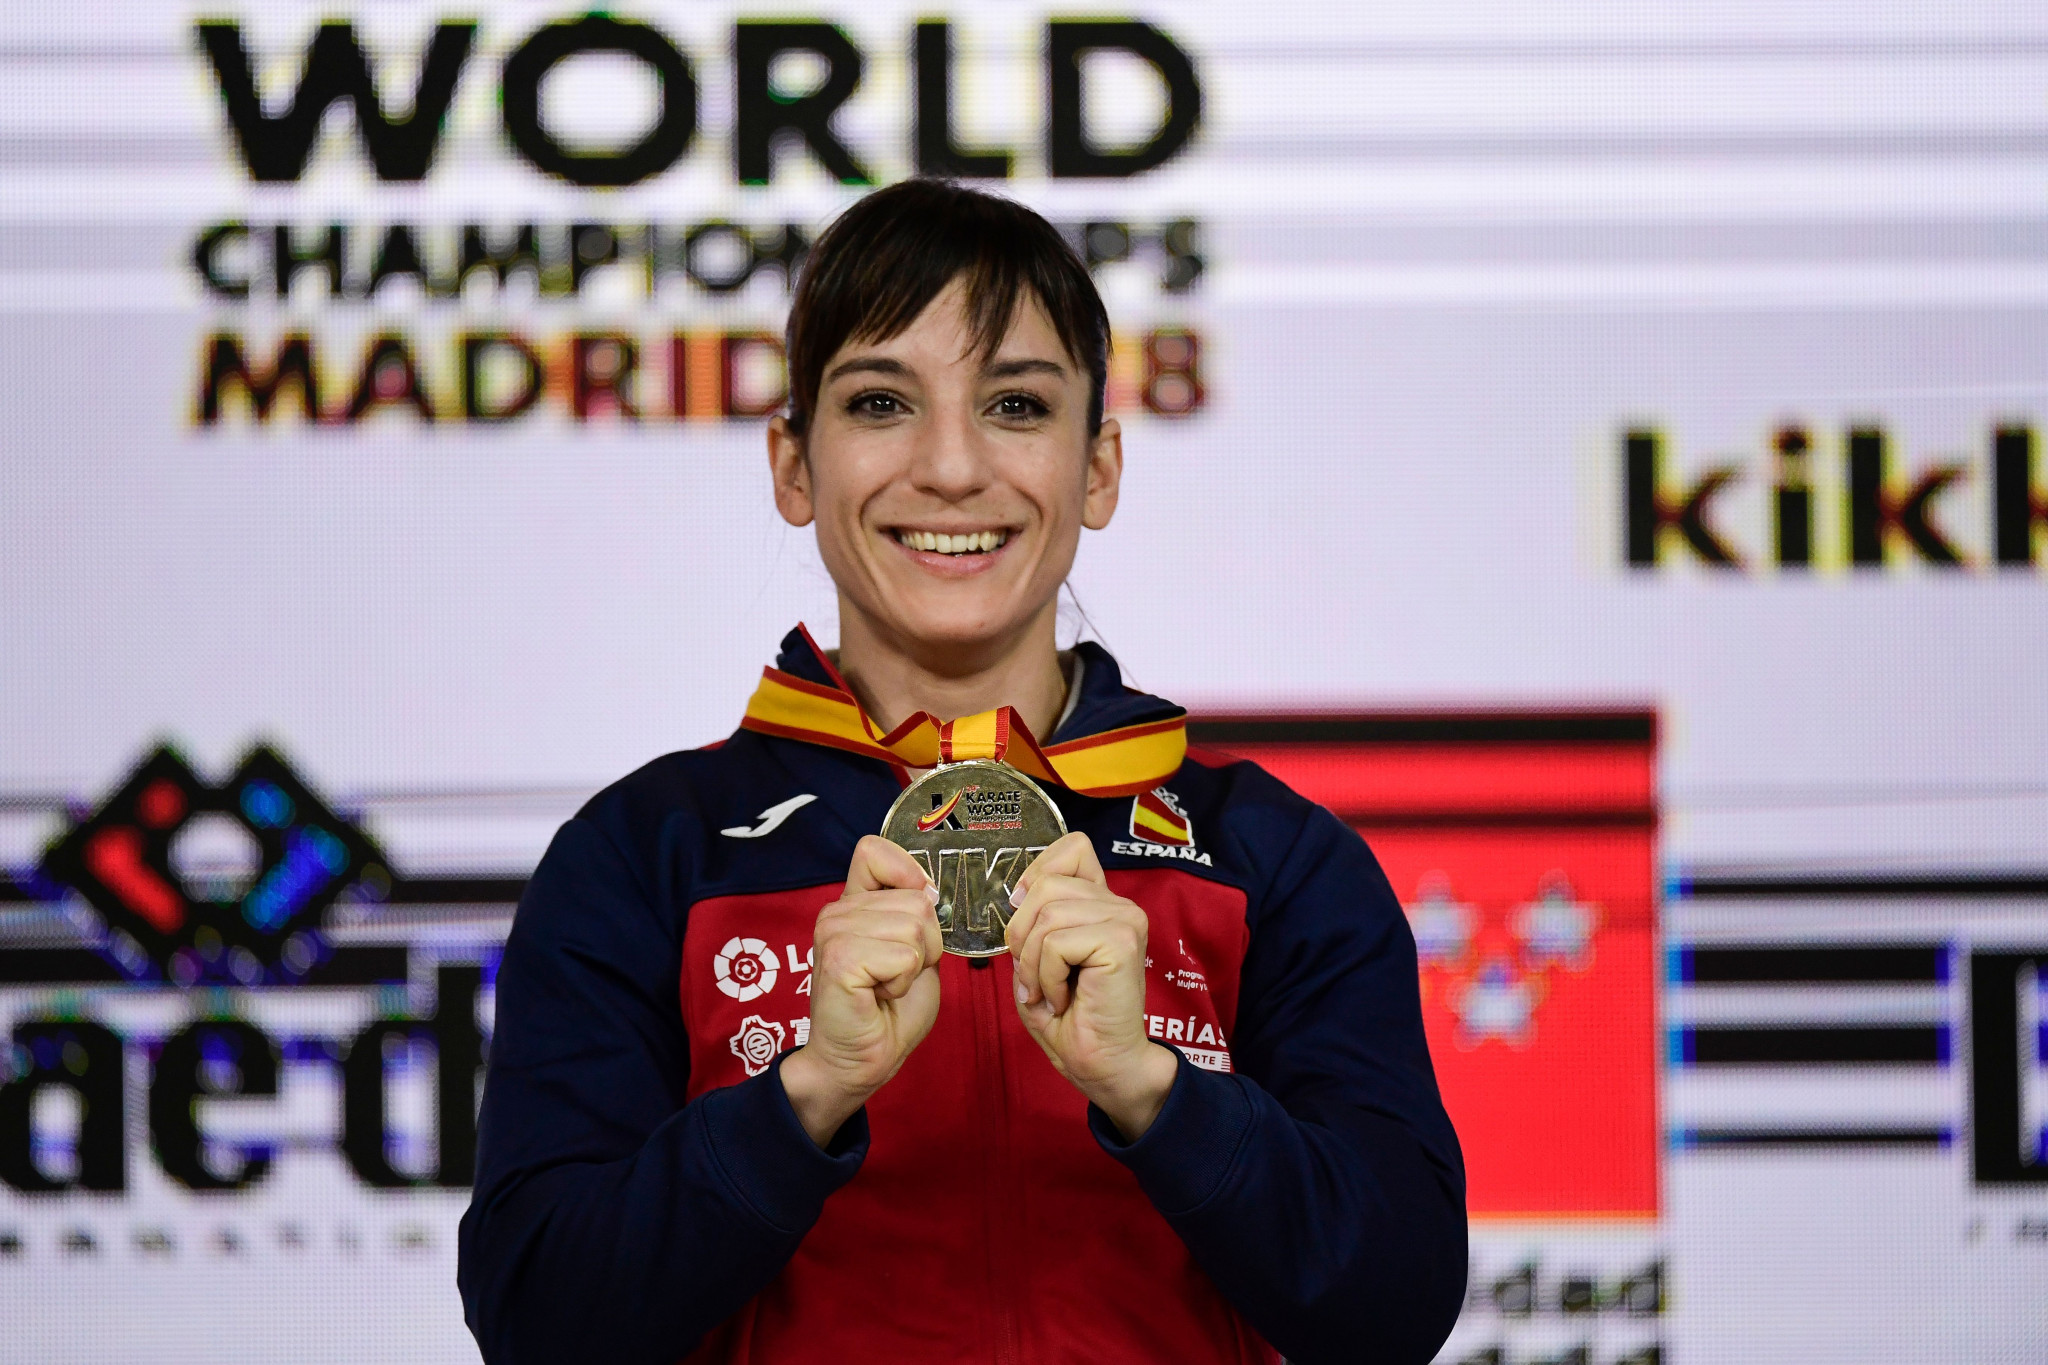 Sandra Sanchez Jaime of Spain will compete in the ANOC World Beach Games in San Diego after winning gold in the Karate World Championships in Madrid ©Getty Images